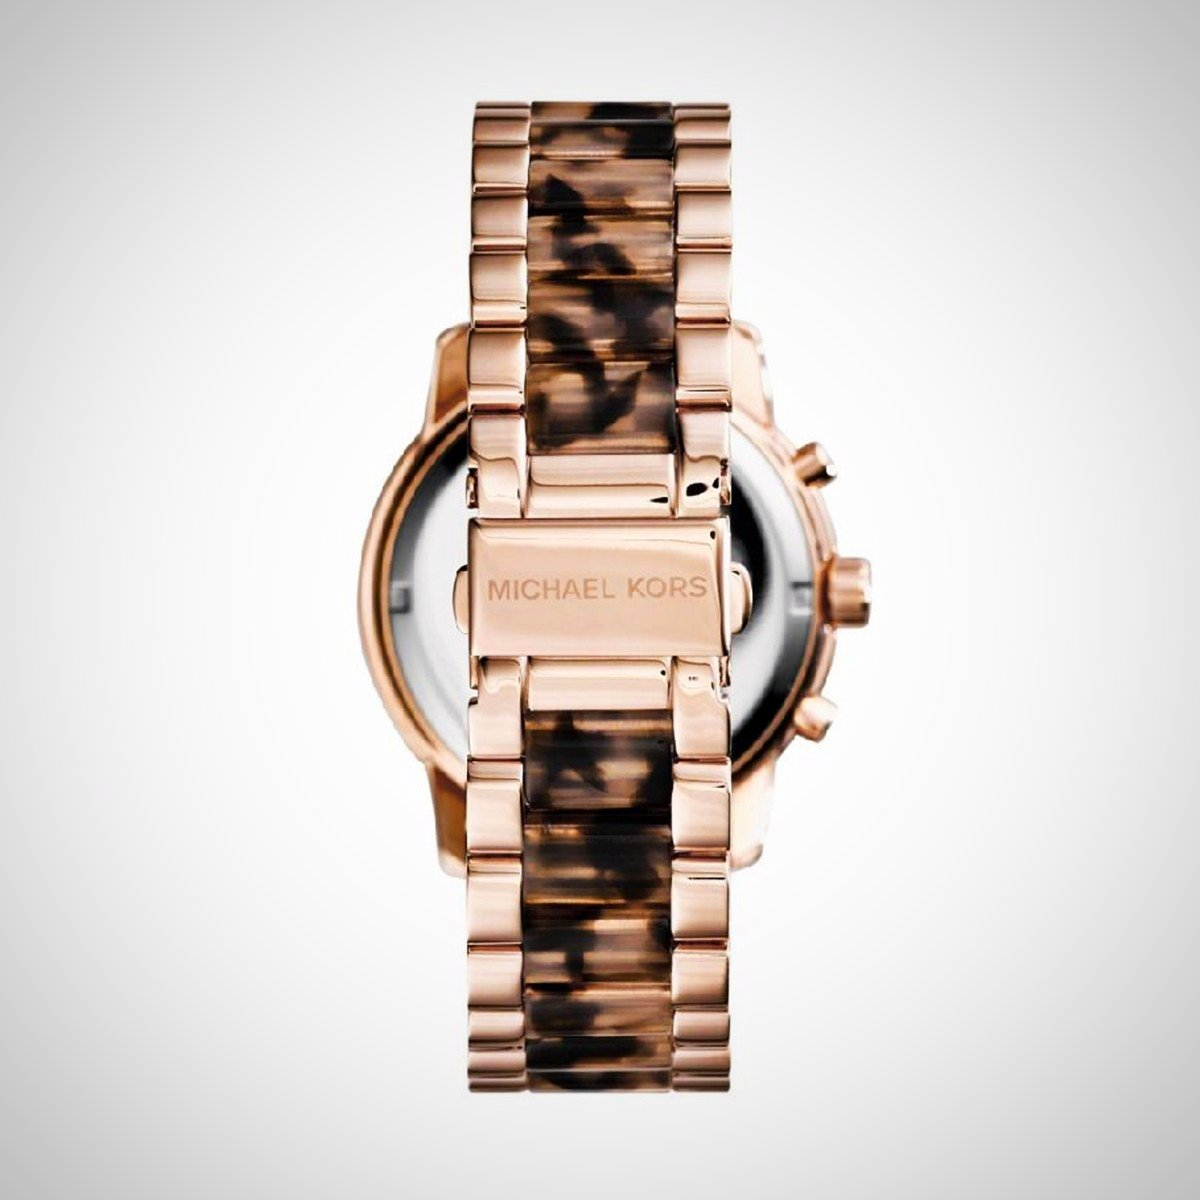 Michael Kors MK6155 Ladies Cooper Tortoise Acetate Rose Gold Watch